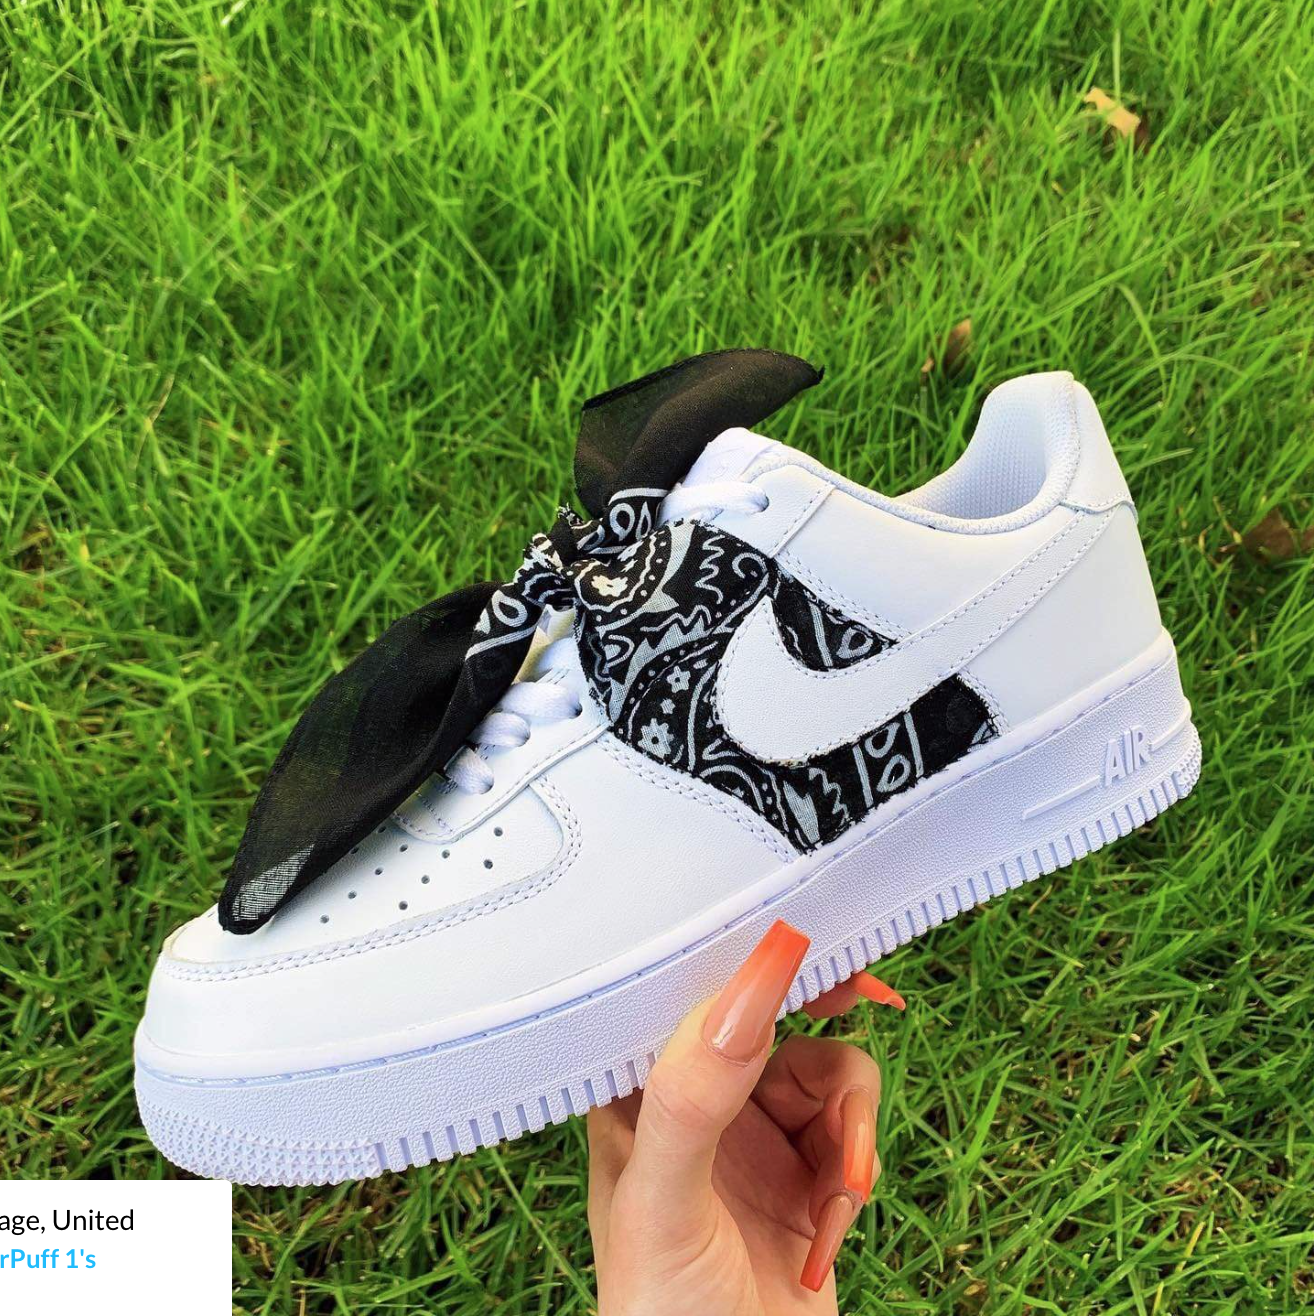 Black Bandana Af1 Nike Shoes Air Force Custom Nike Shoes Nike Air Shoes